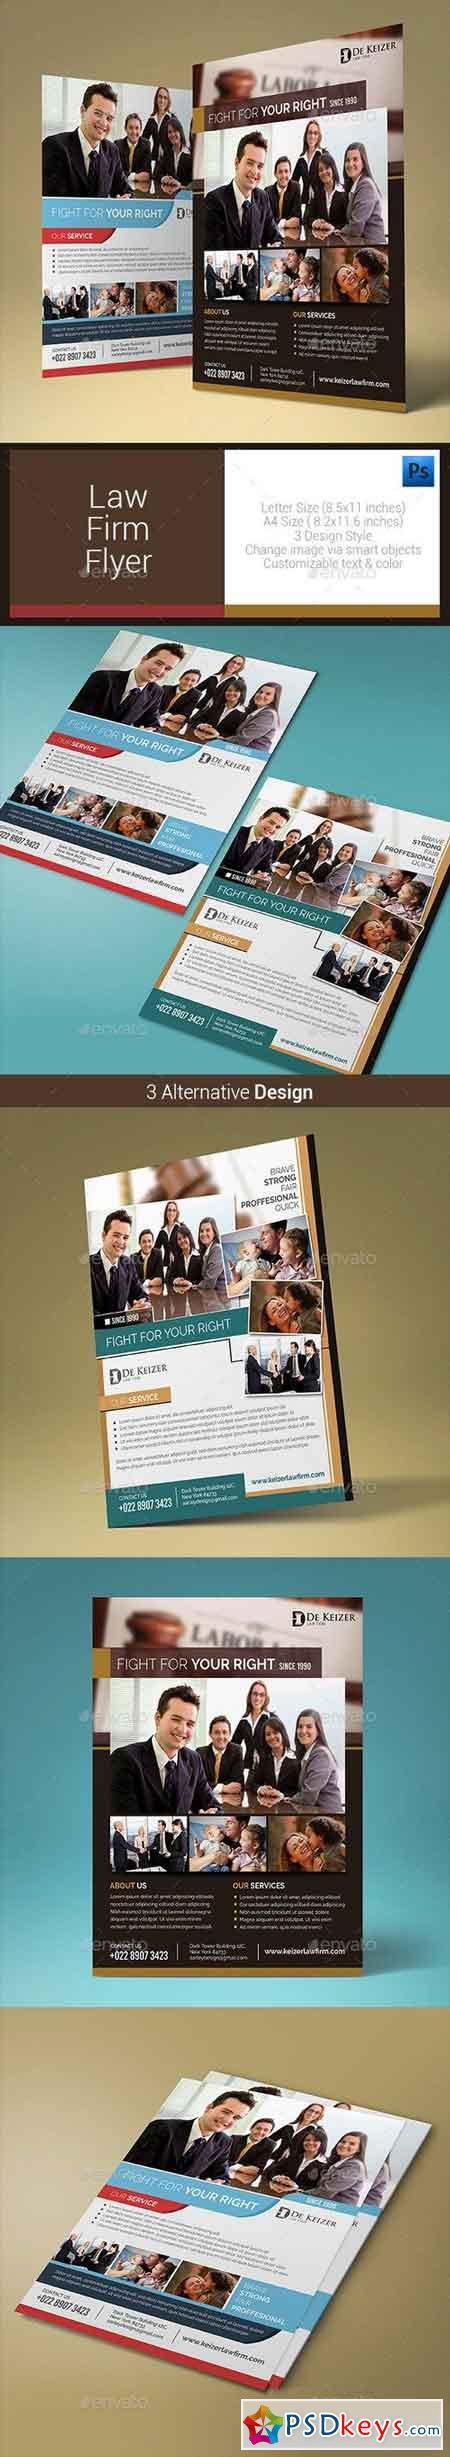 Law Firm Flyer 10608631